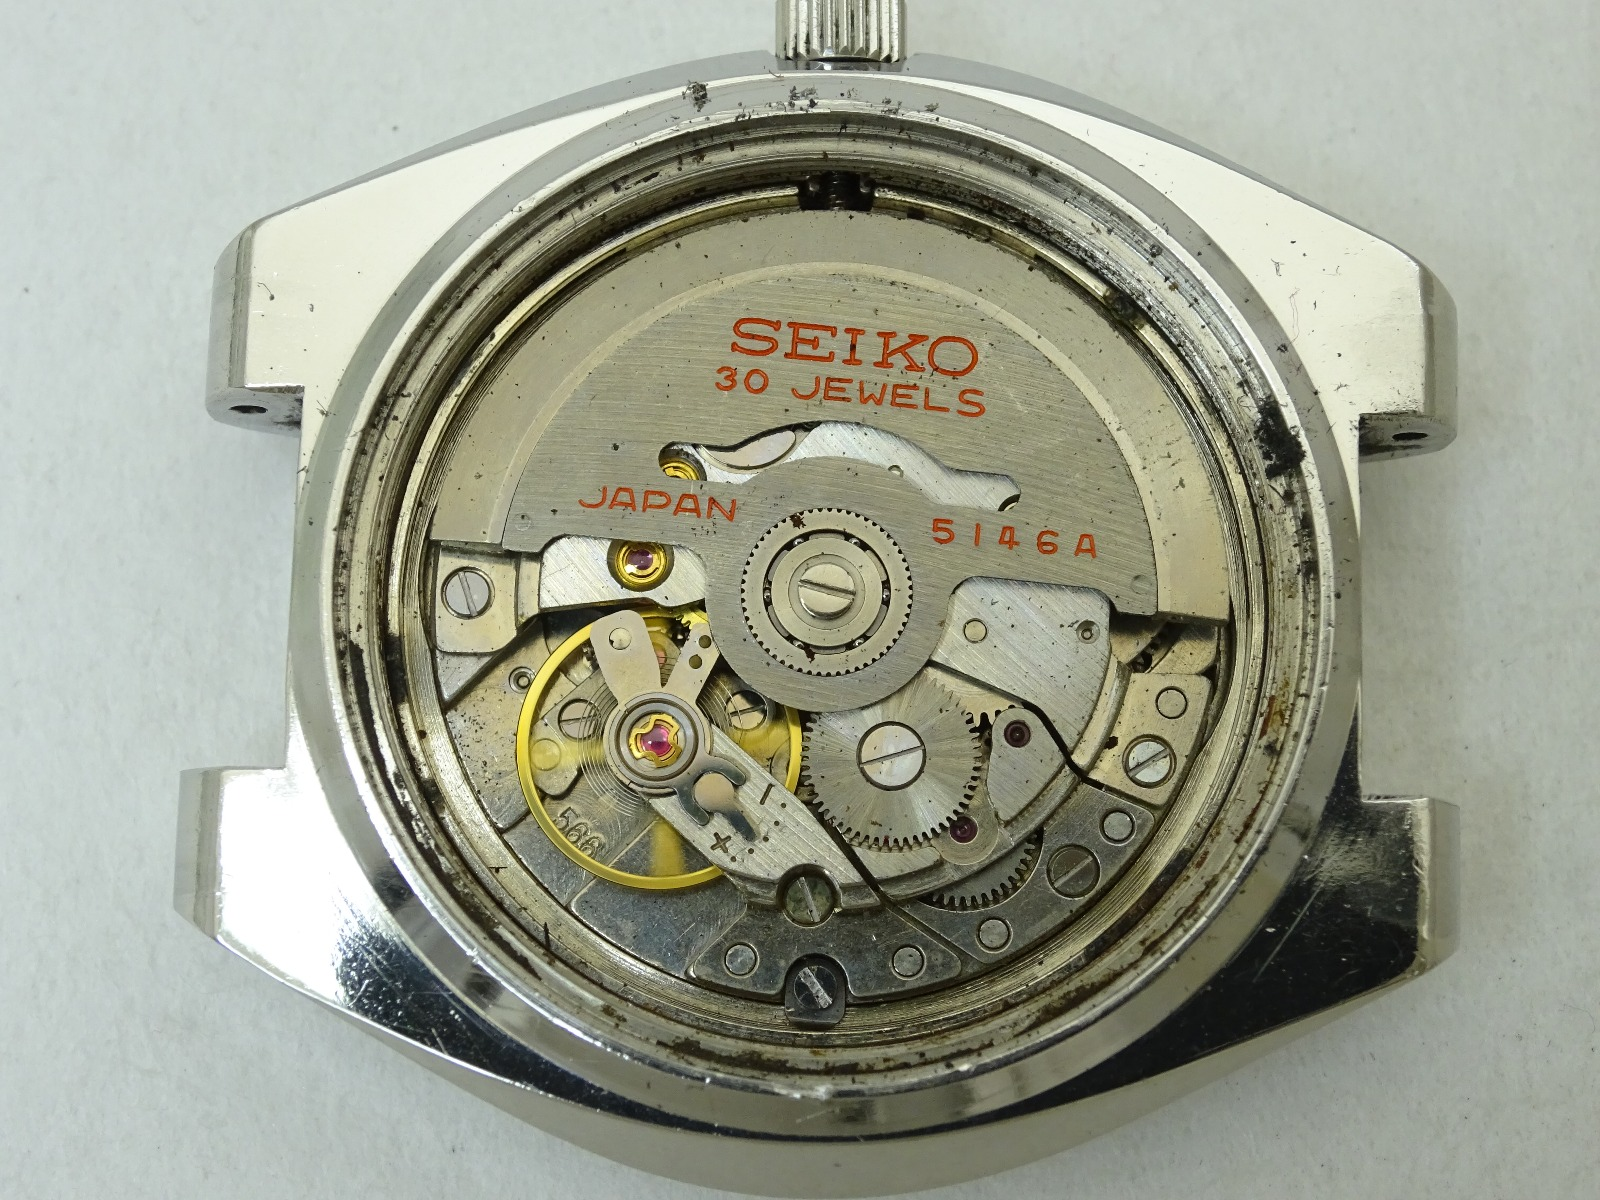 Vintage 1969 JAPAN SEIKO PRESMATIC WEEKDATER 5146-7010 30Jewels Automatic.